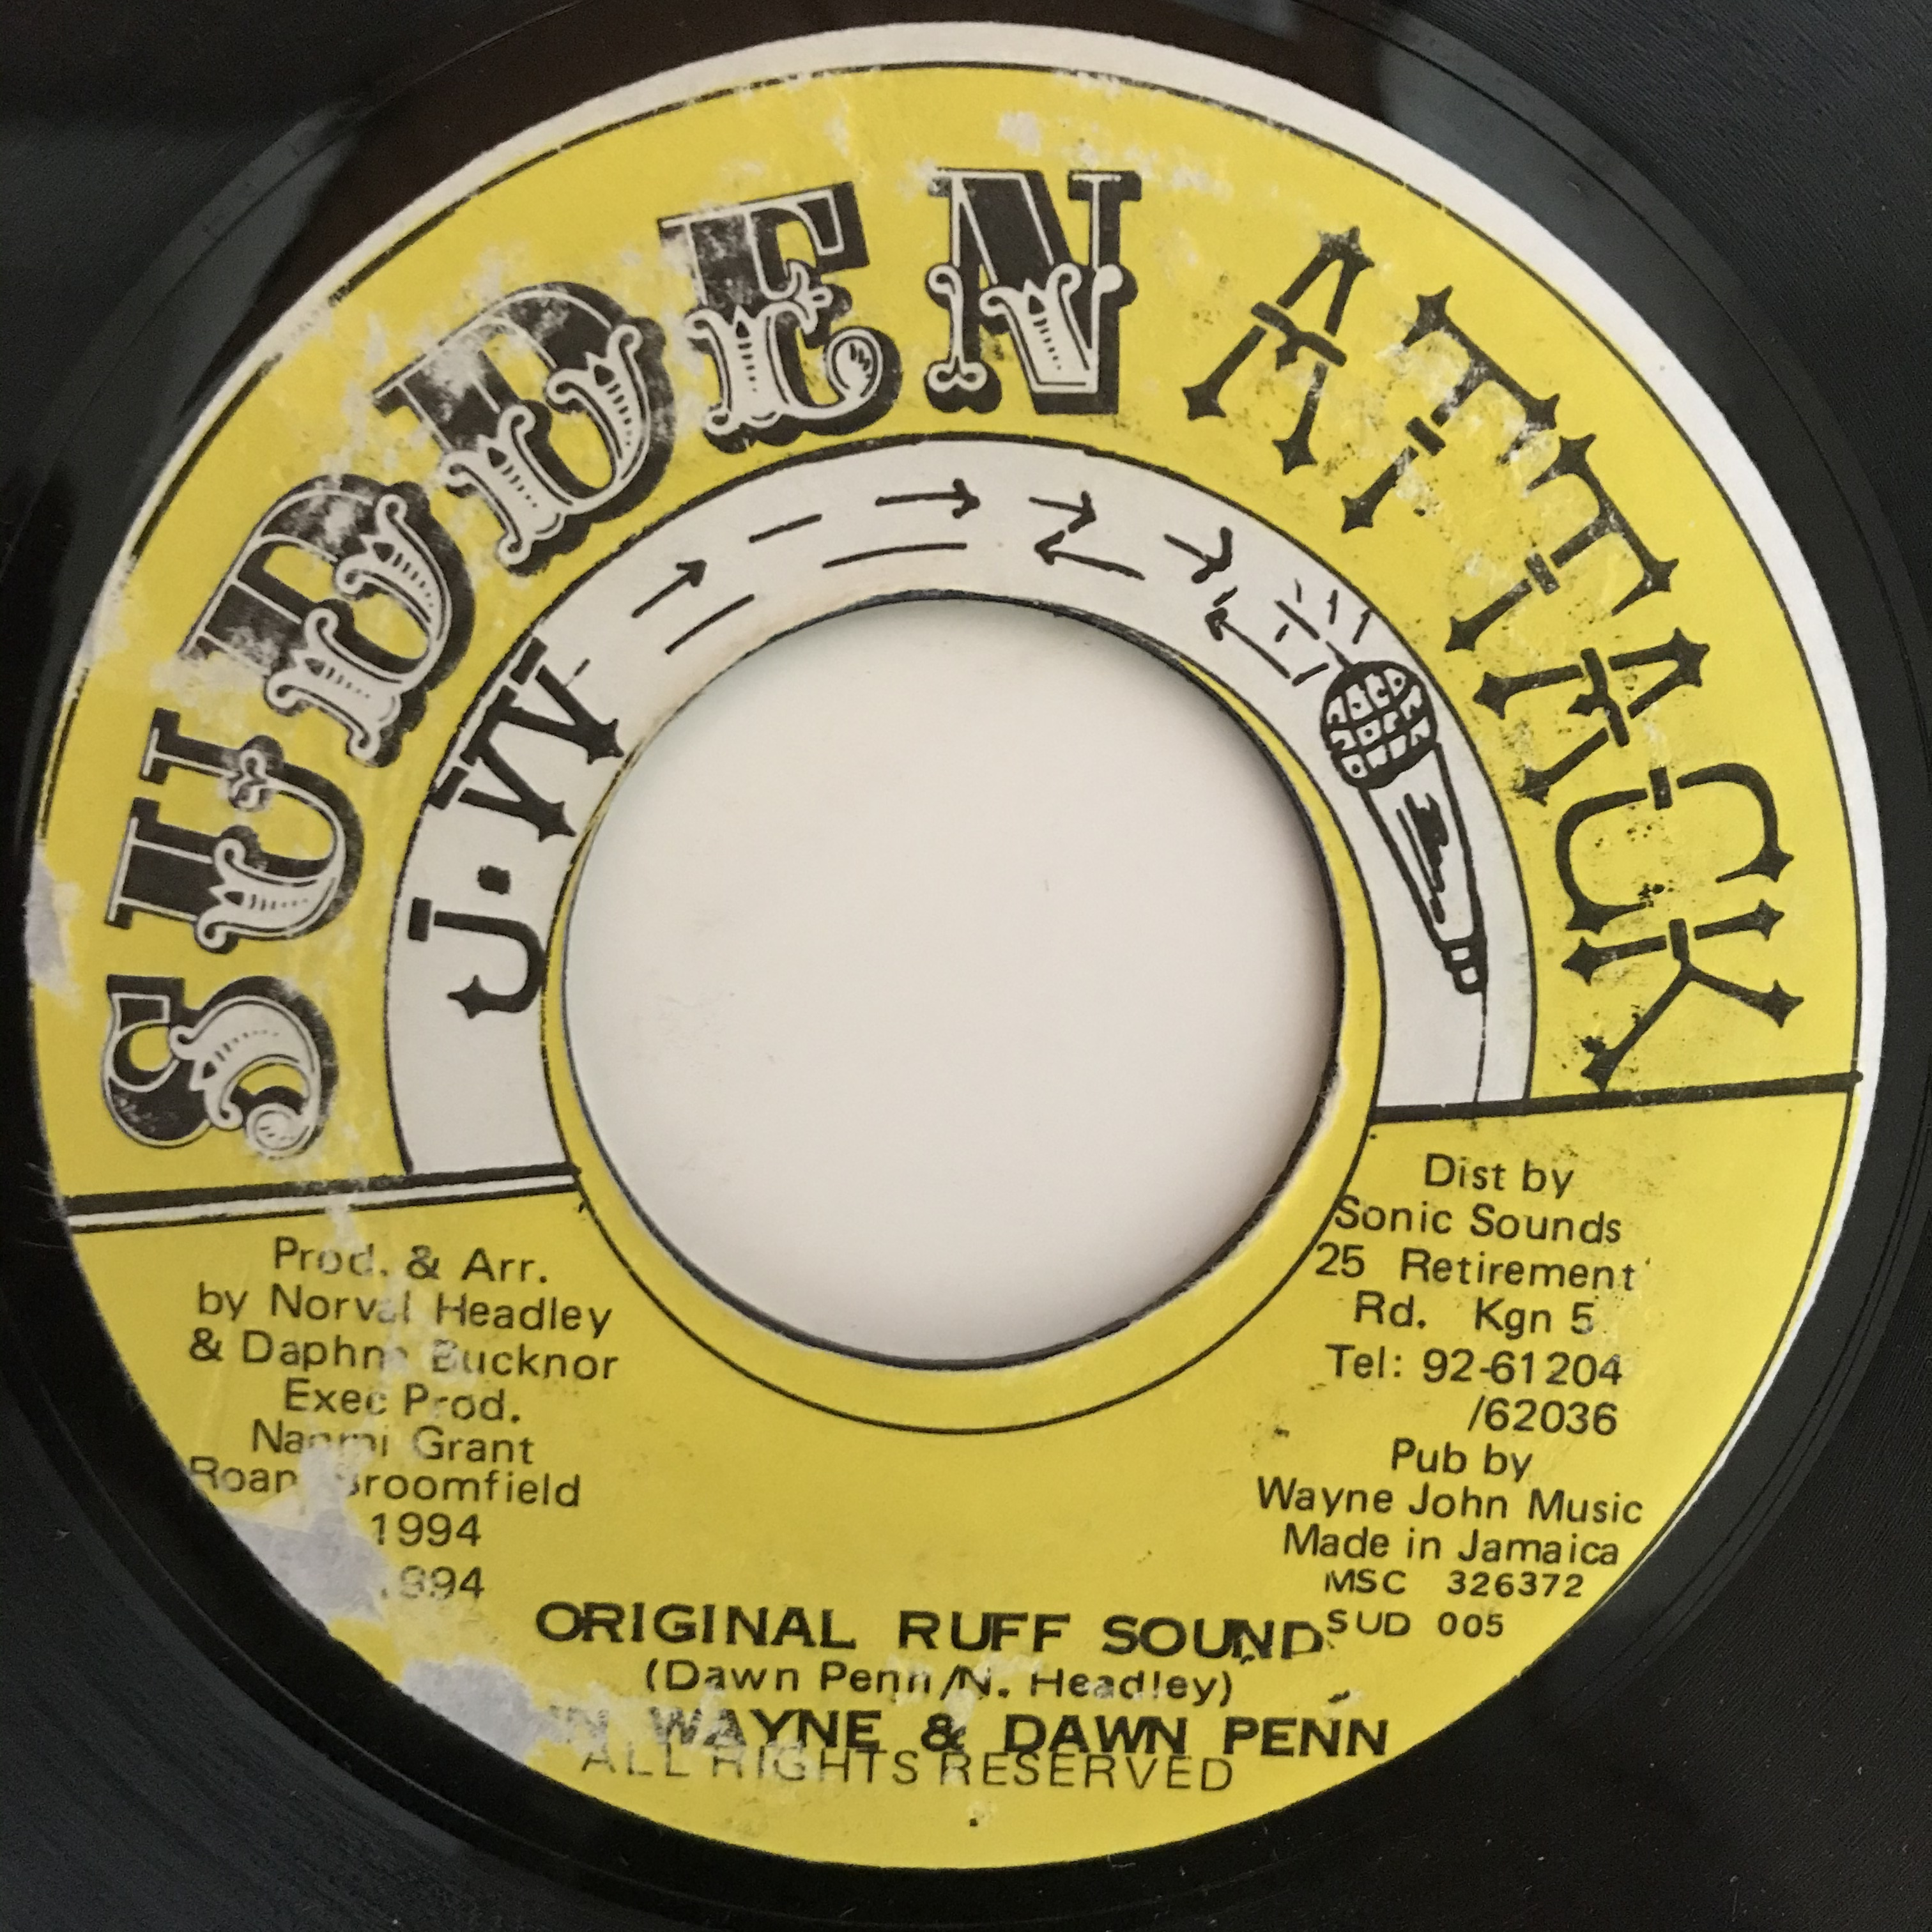 John Wayne & Dawn Penn - Original Ruff Sound【7-10870】